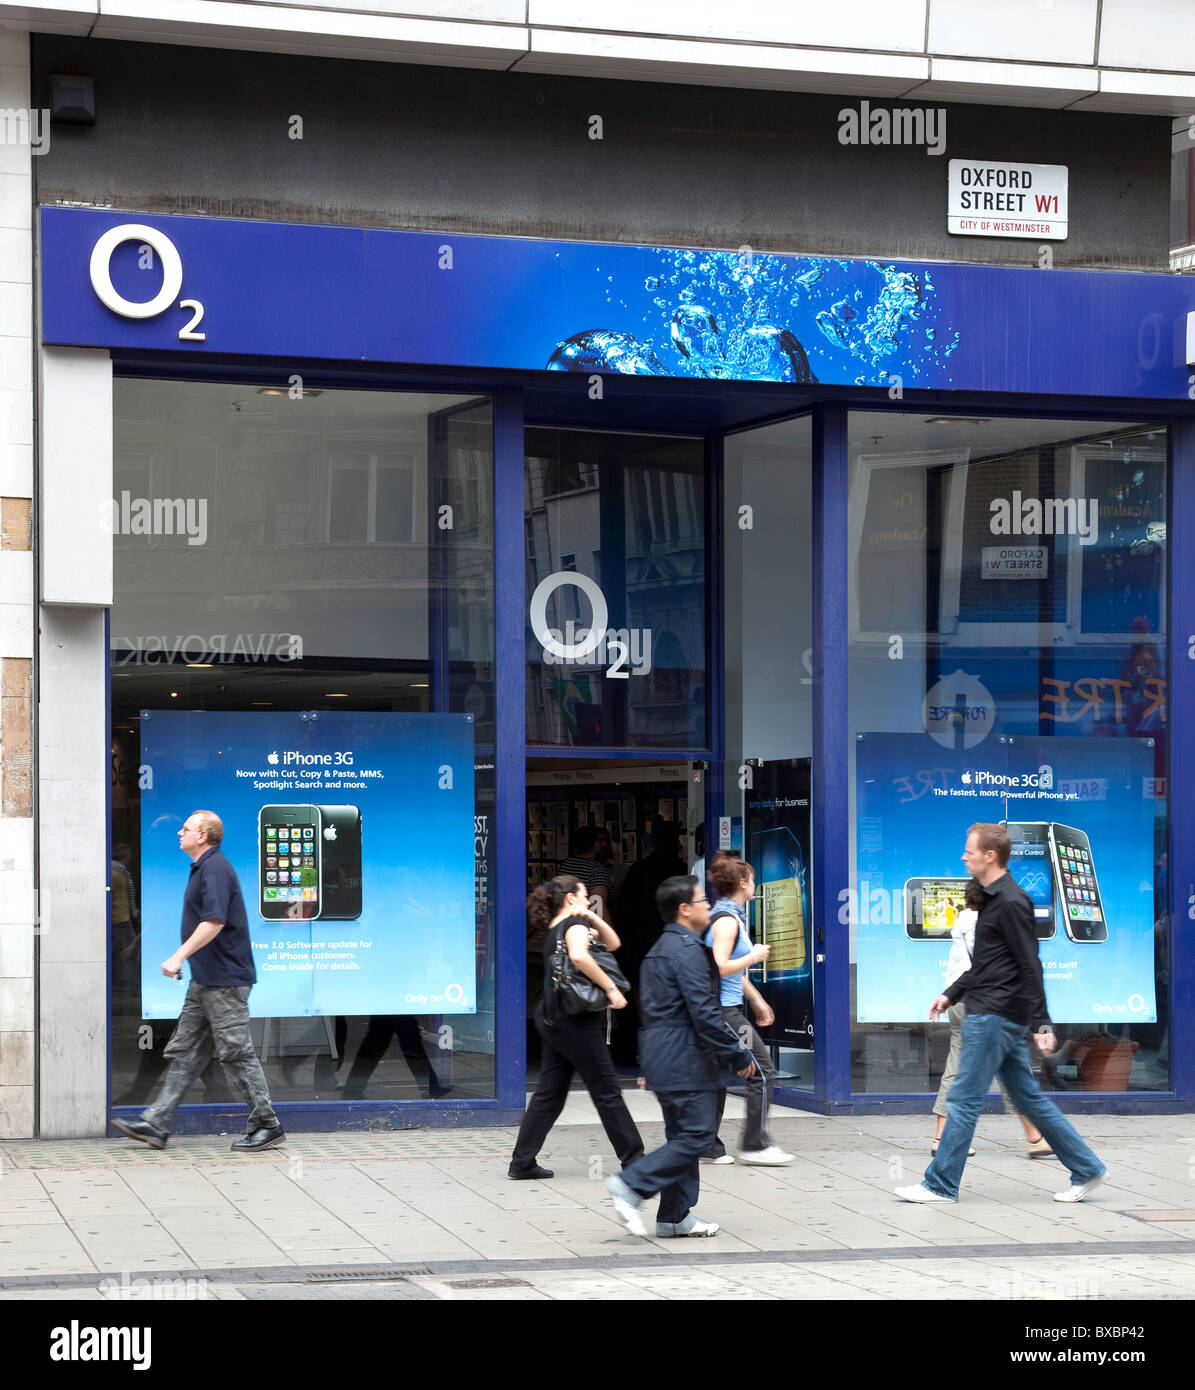 Store of the telecommunications company O2 on Oxford Street in London, England, United Kingdom, Europe - Stock Image